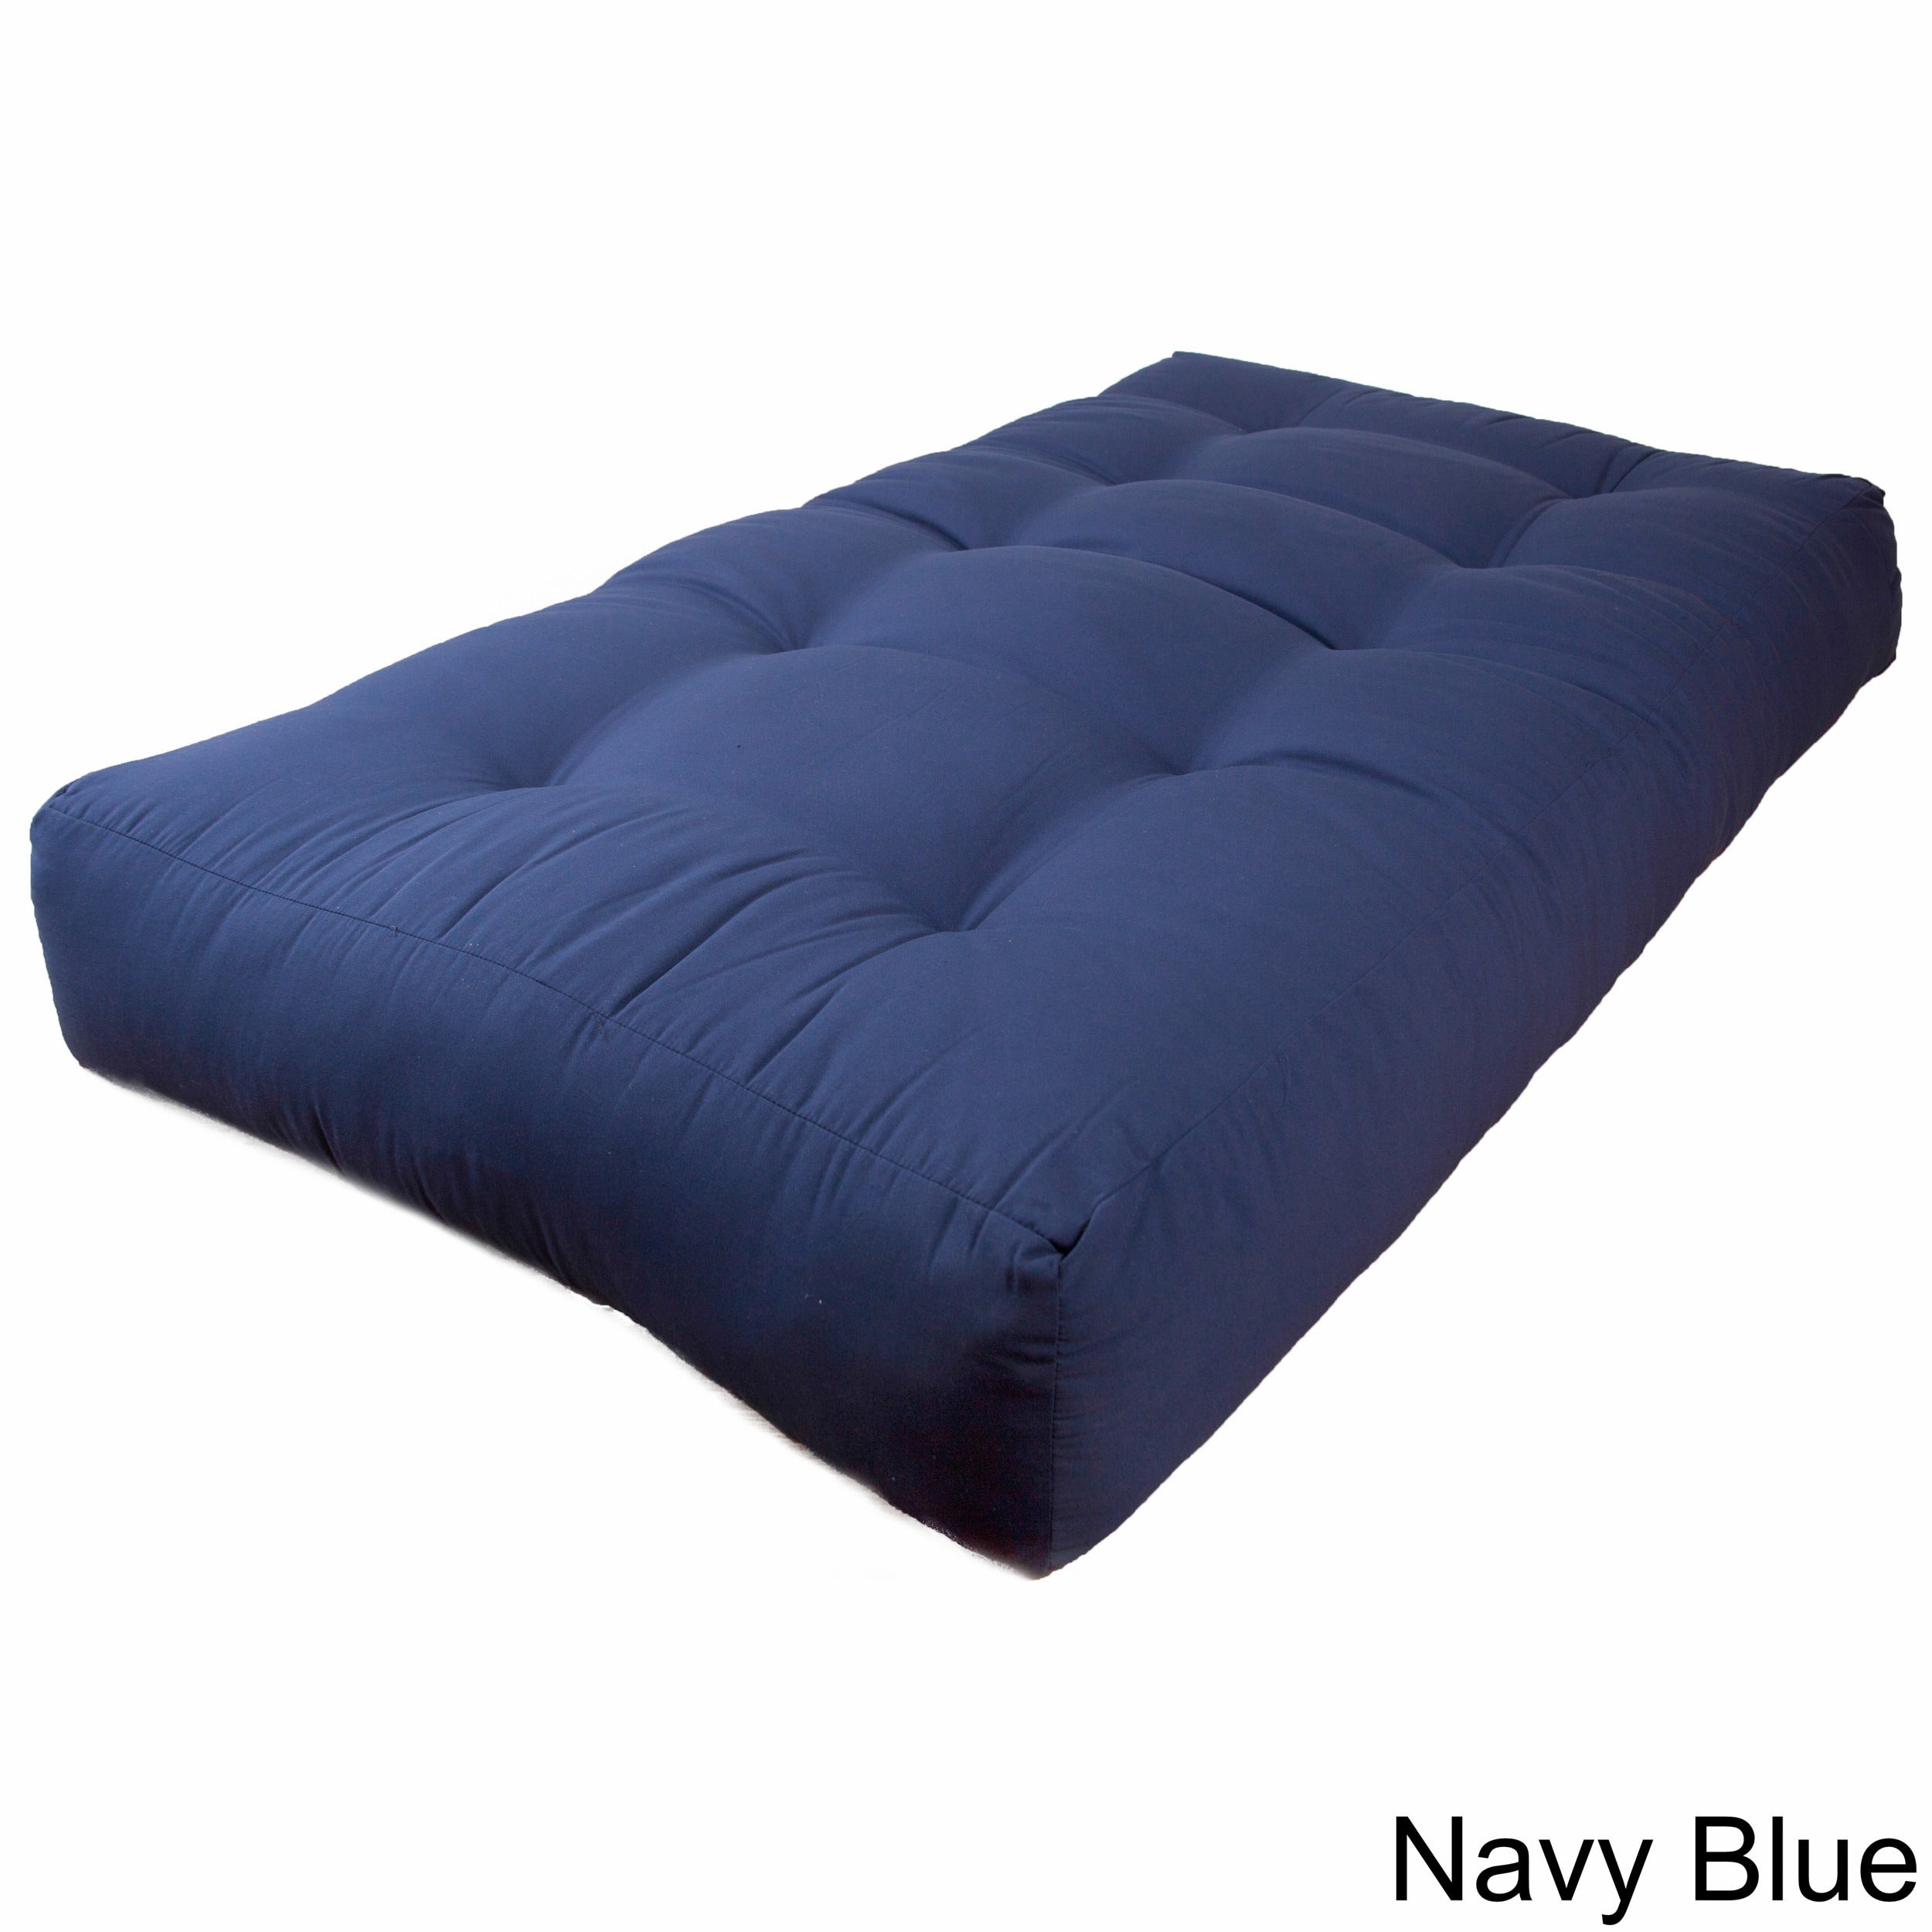 covers futons pin bedroom futon pinterest near walmart mattress me